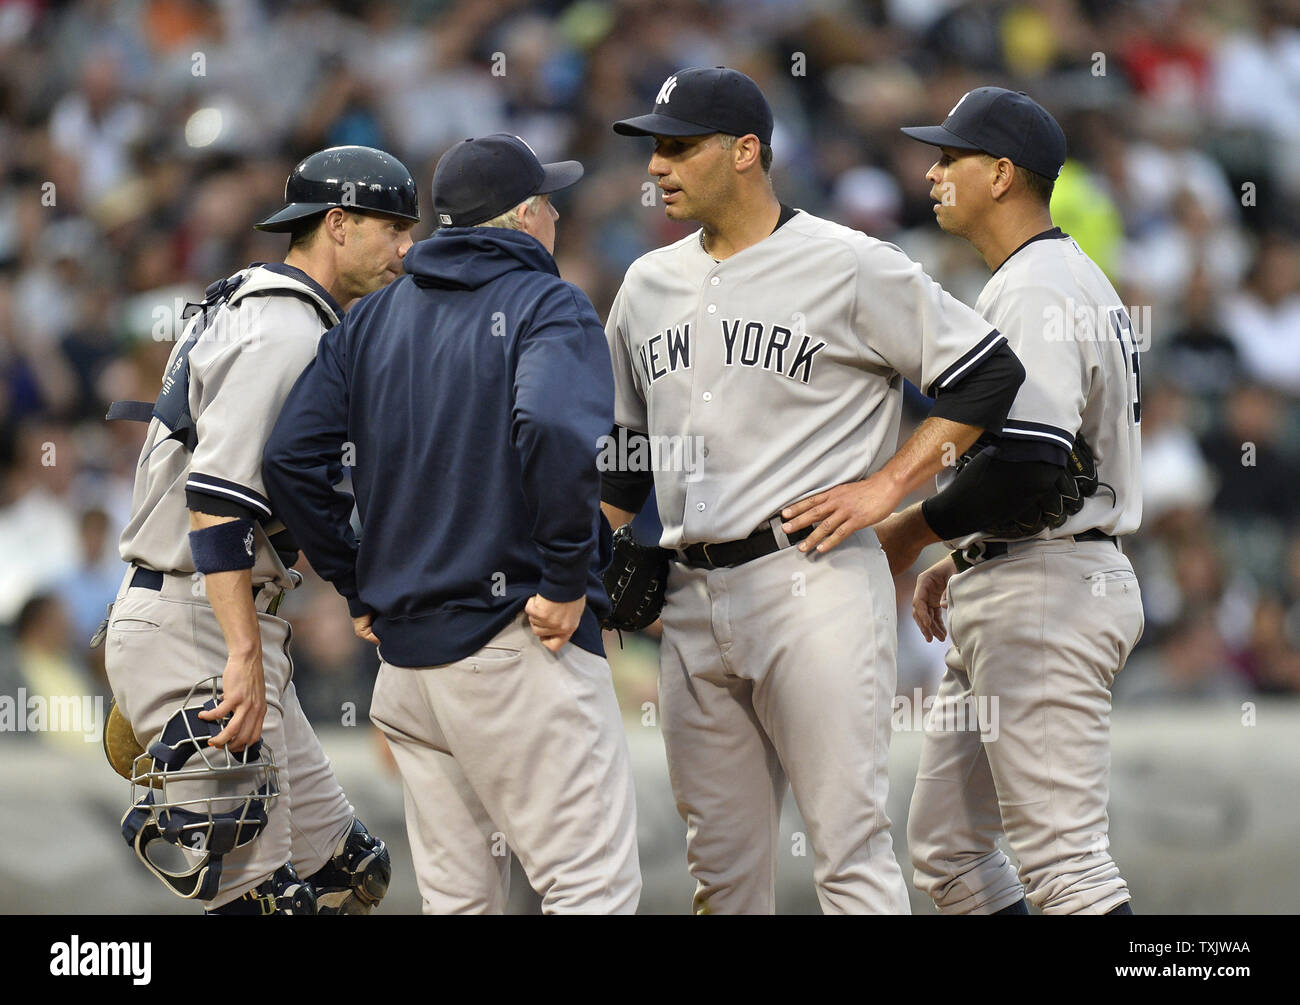 New York Yankees catcher Chris Stewart (L), pitching coach Larry Rothschild and third baseman Alex Rodriguez (R) talk with starting pitcher Andy Pettitte (C) during the second inning against the Chicago White Sox at U.S. Cellular Field in Chicago on August 5, 2013.     UPI/Brian Kersey - Stock Image